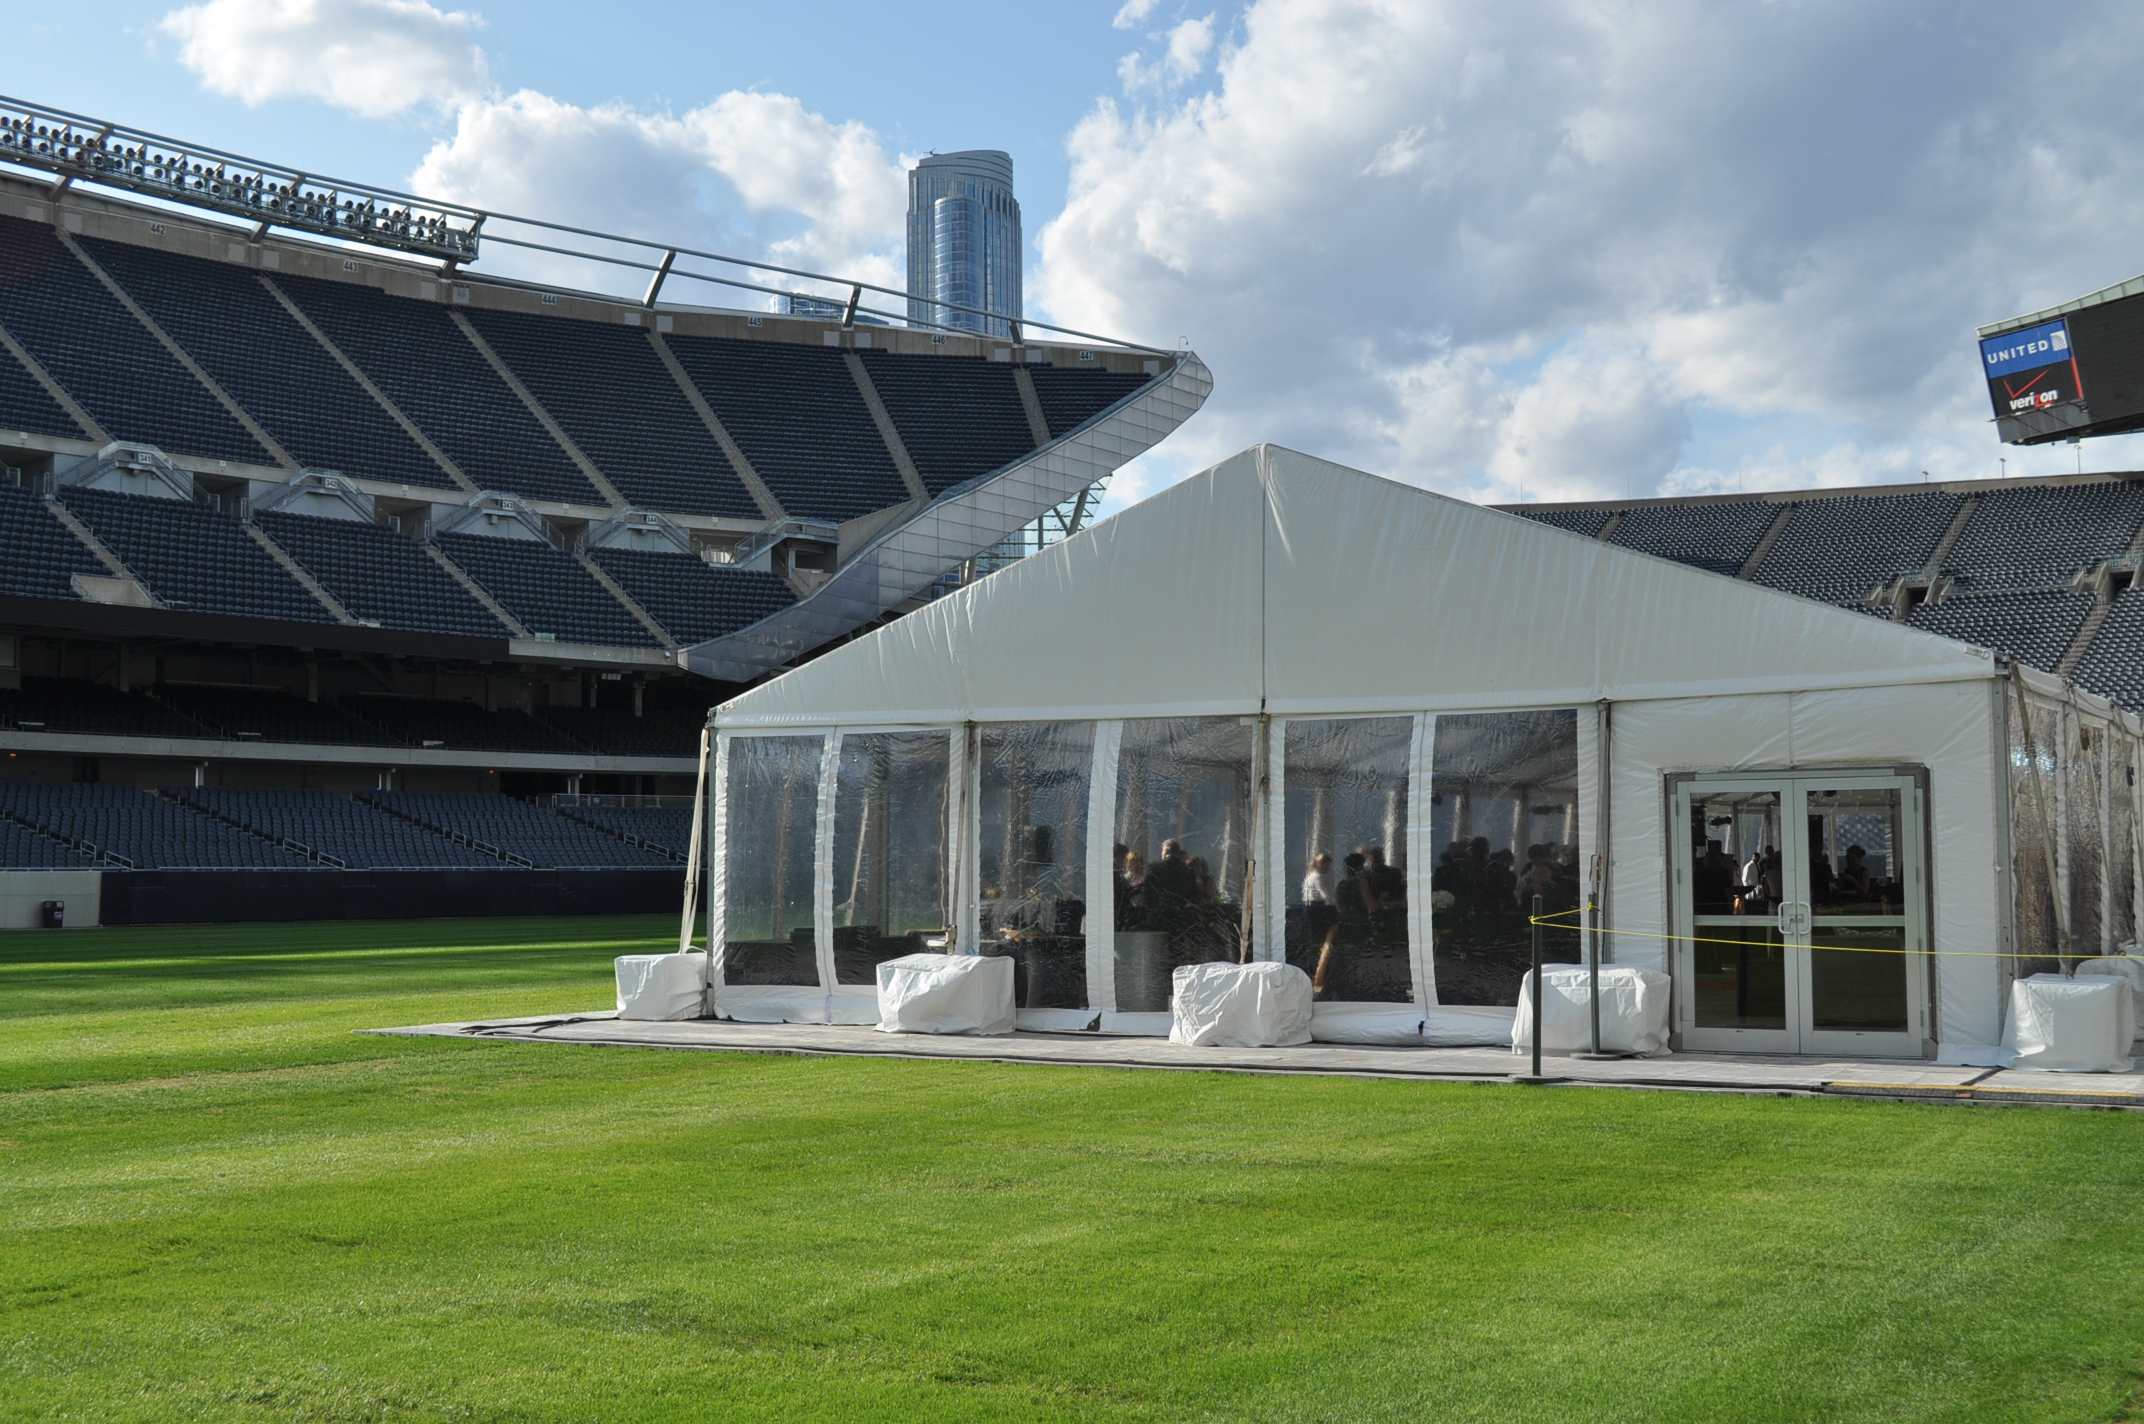 Wish Ball tent on the field at Soldier Field